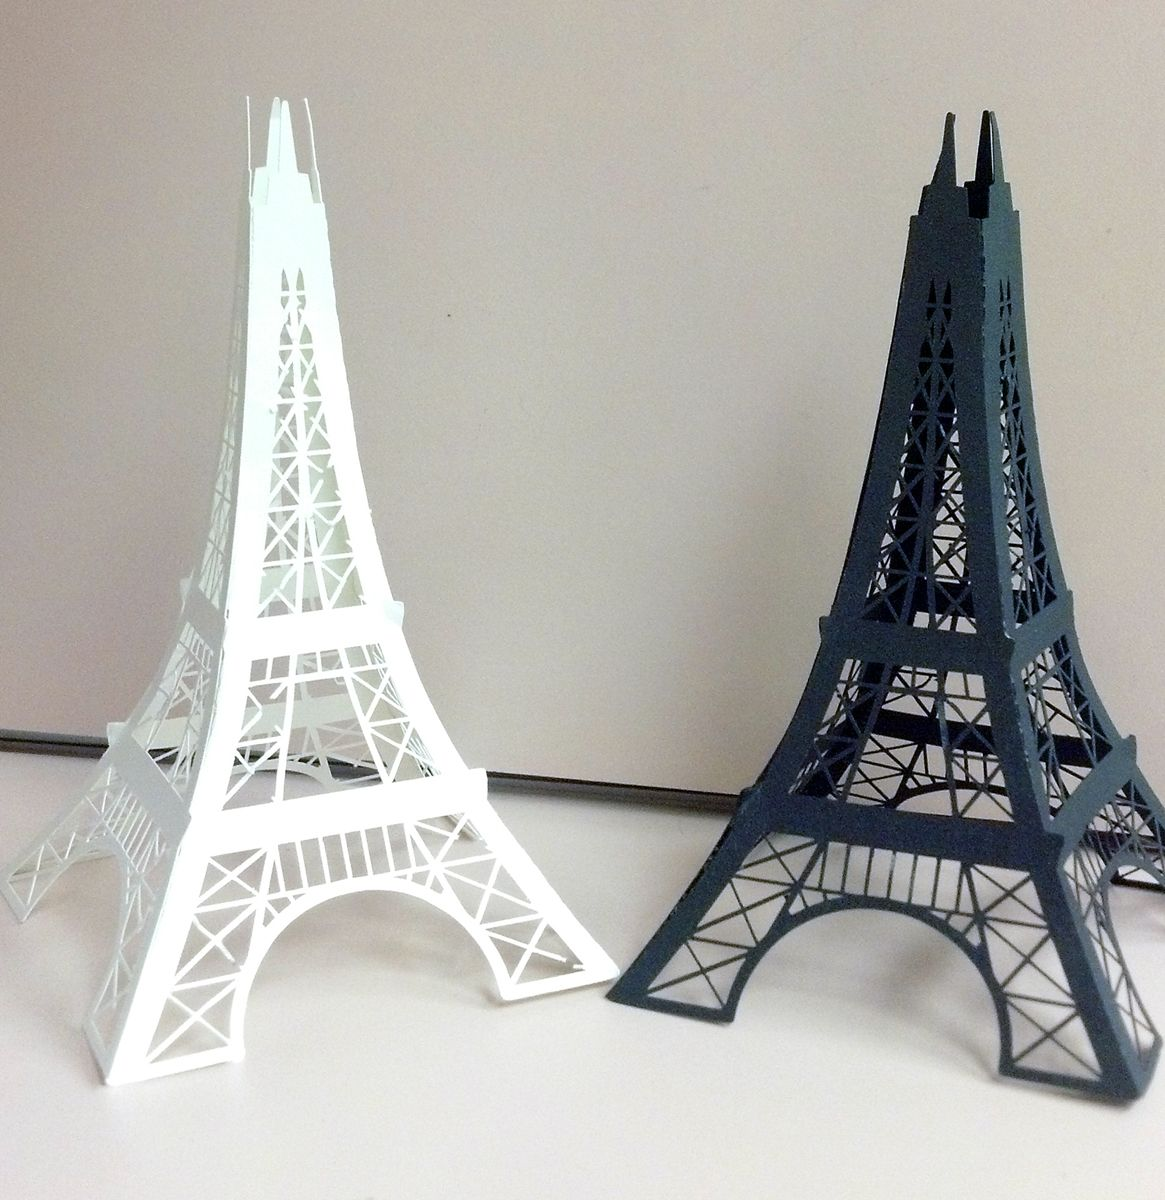 Images About Paper Craft Eiffel Tower On Pinterest Laser cafcdeaeaffad Paper Craft Eiffel Tower